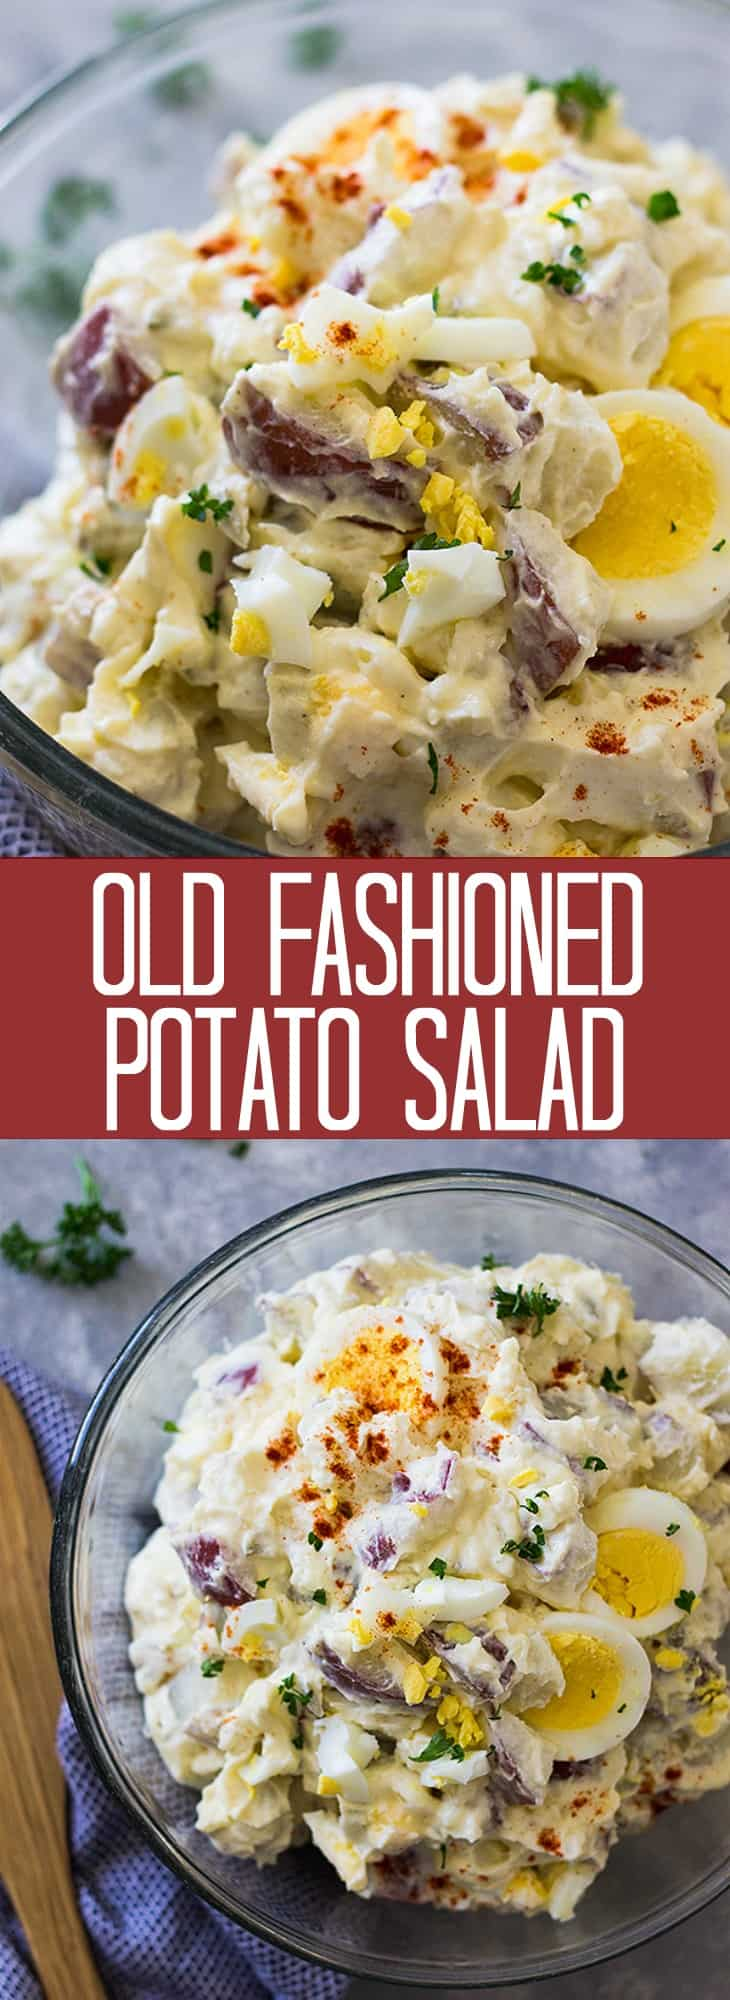 This Old Fashioned Potato Salad is a classic just like grandma made it! It's creamy, made with mayonnaise, sour cream and hard boiled egg. It's perfect for all your summertime get togethers!